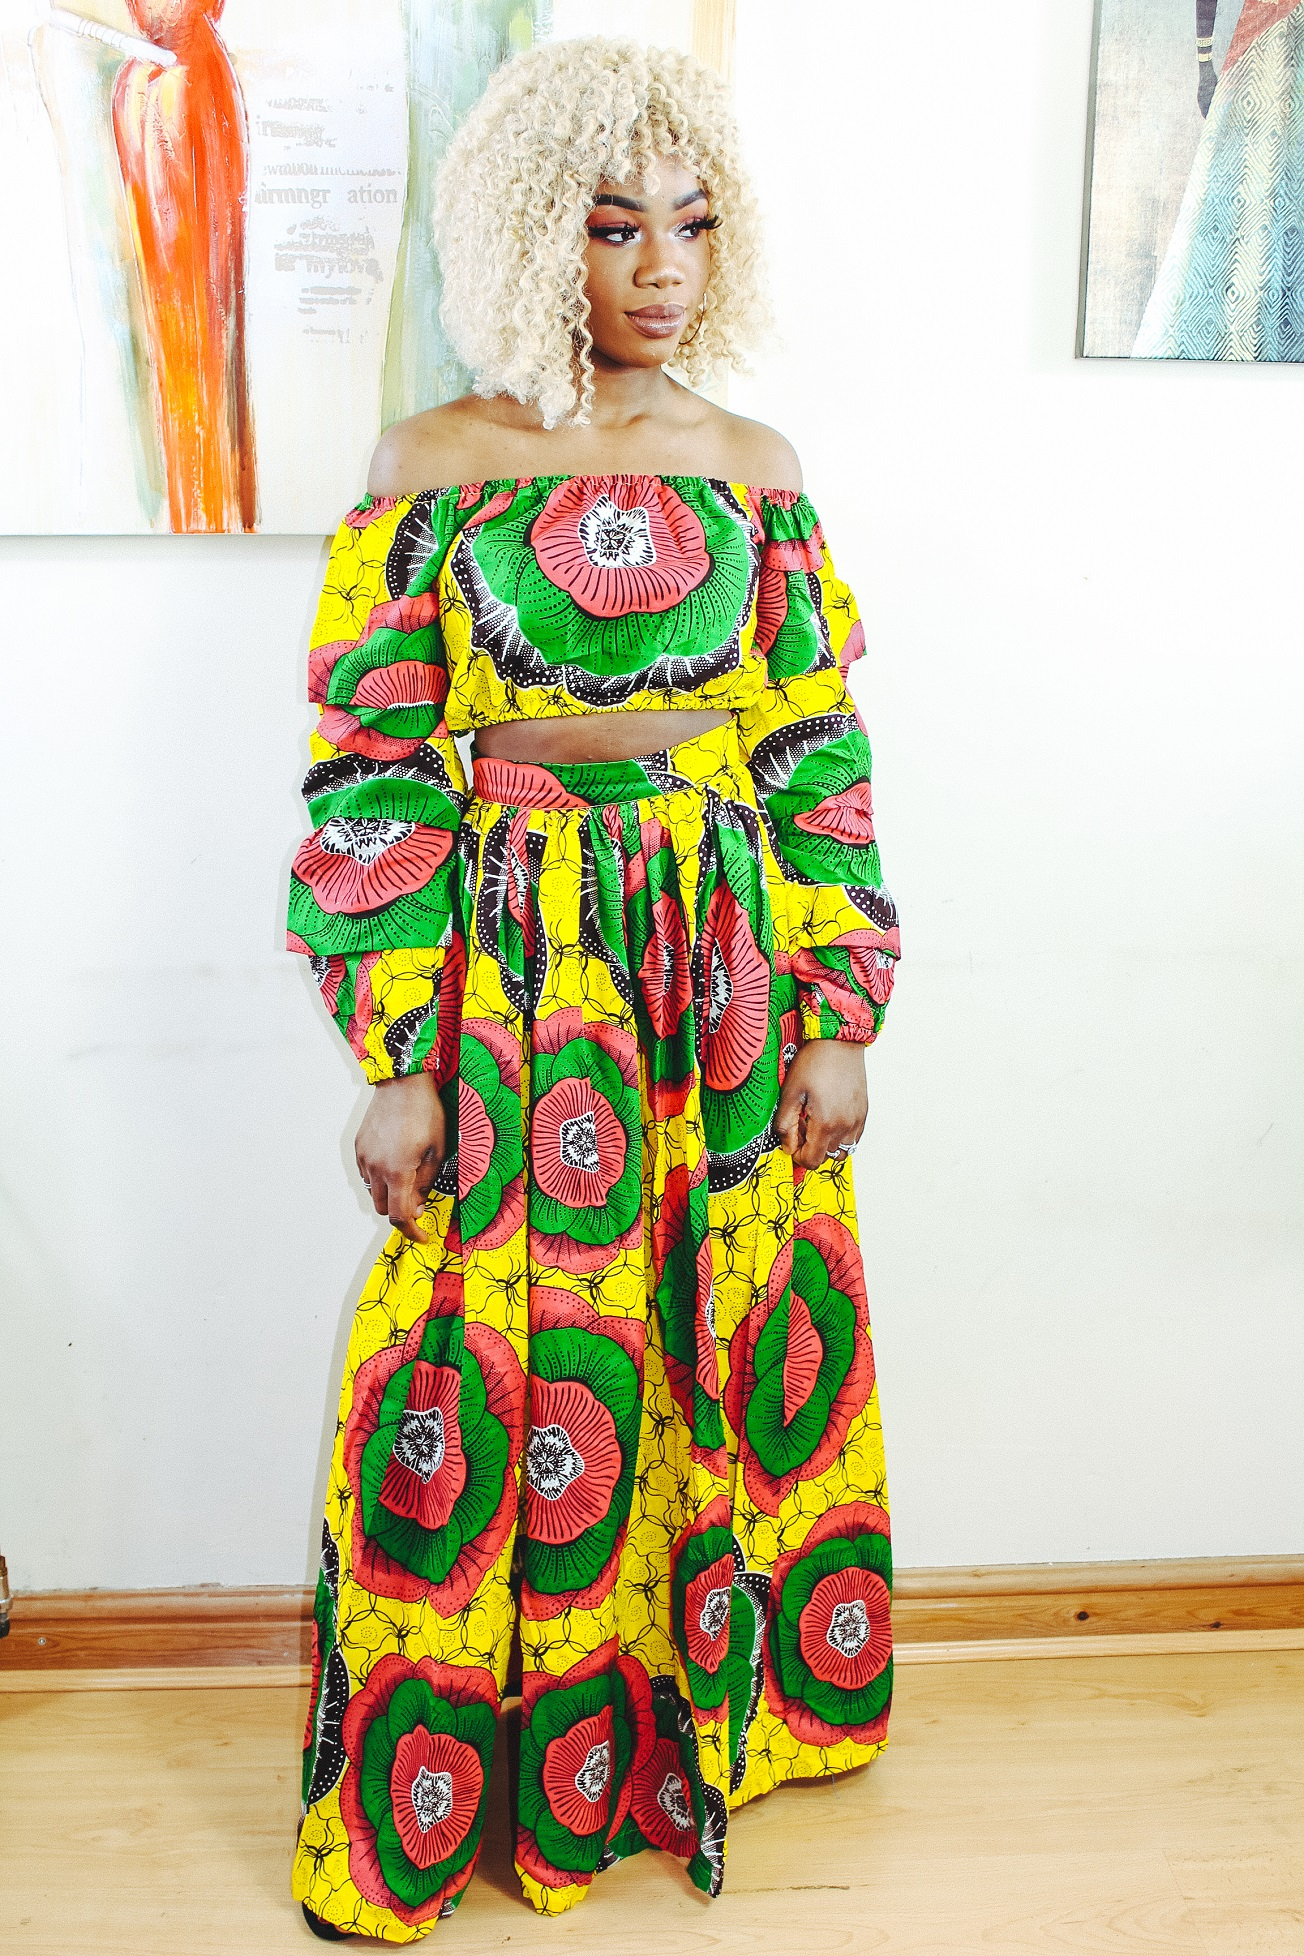 Black Queen in Sunflower 2-piece Ankara Print Crop Top and thigh-High Split Maxi Skirt by Yvonne Irenroa African Fashion